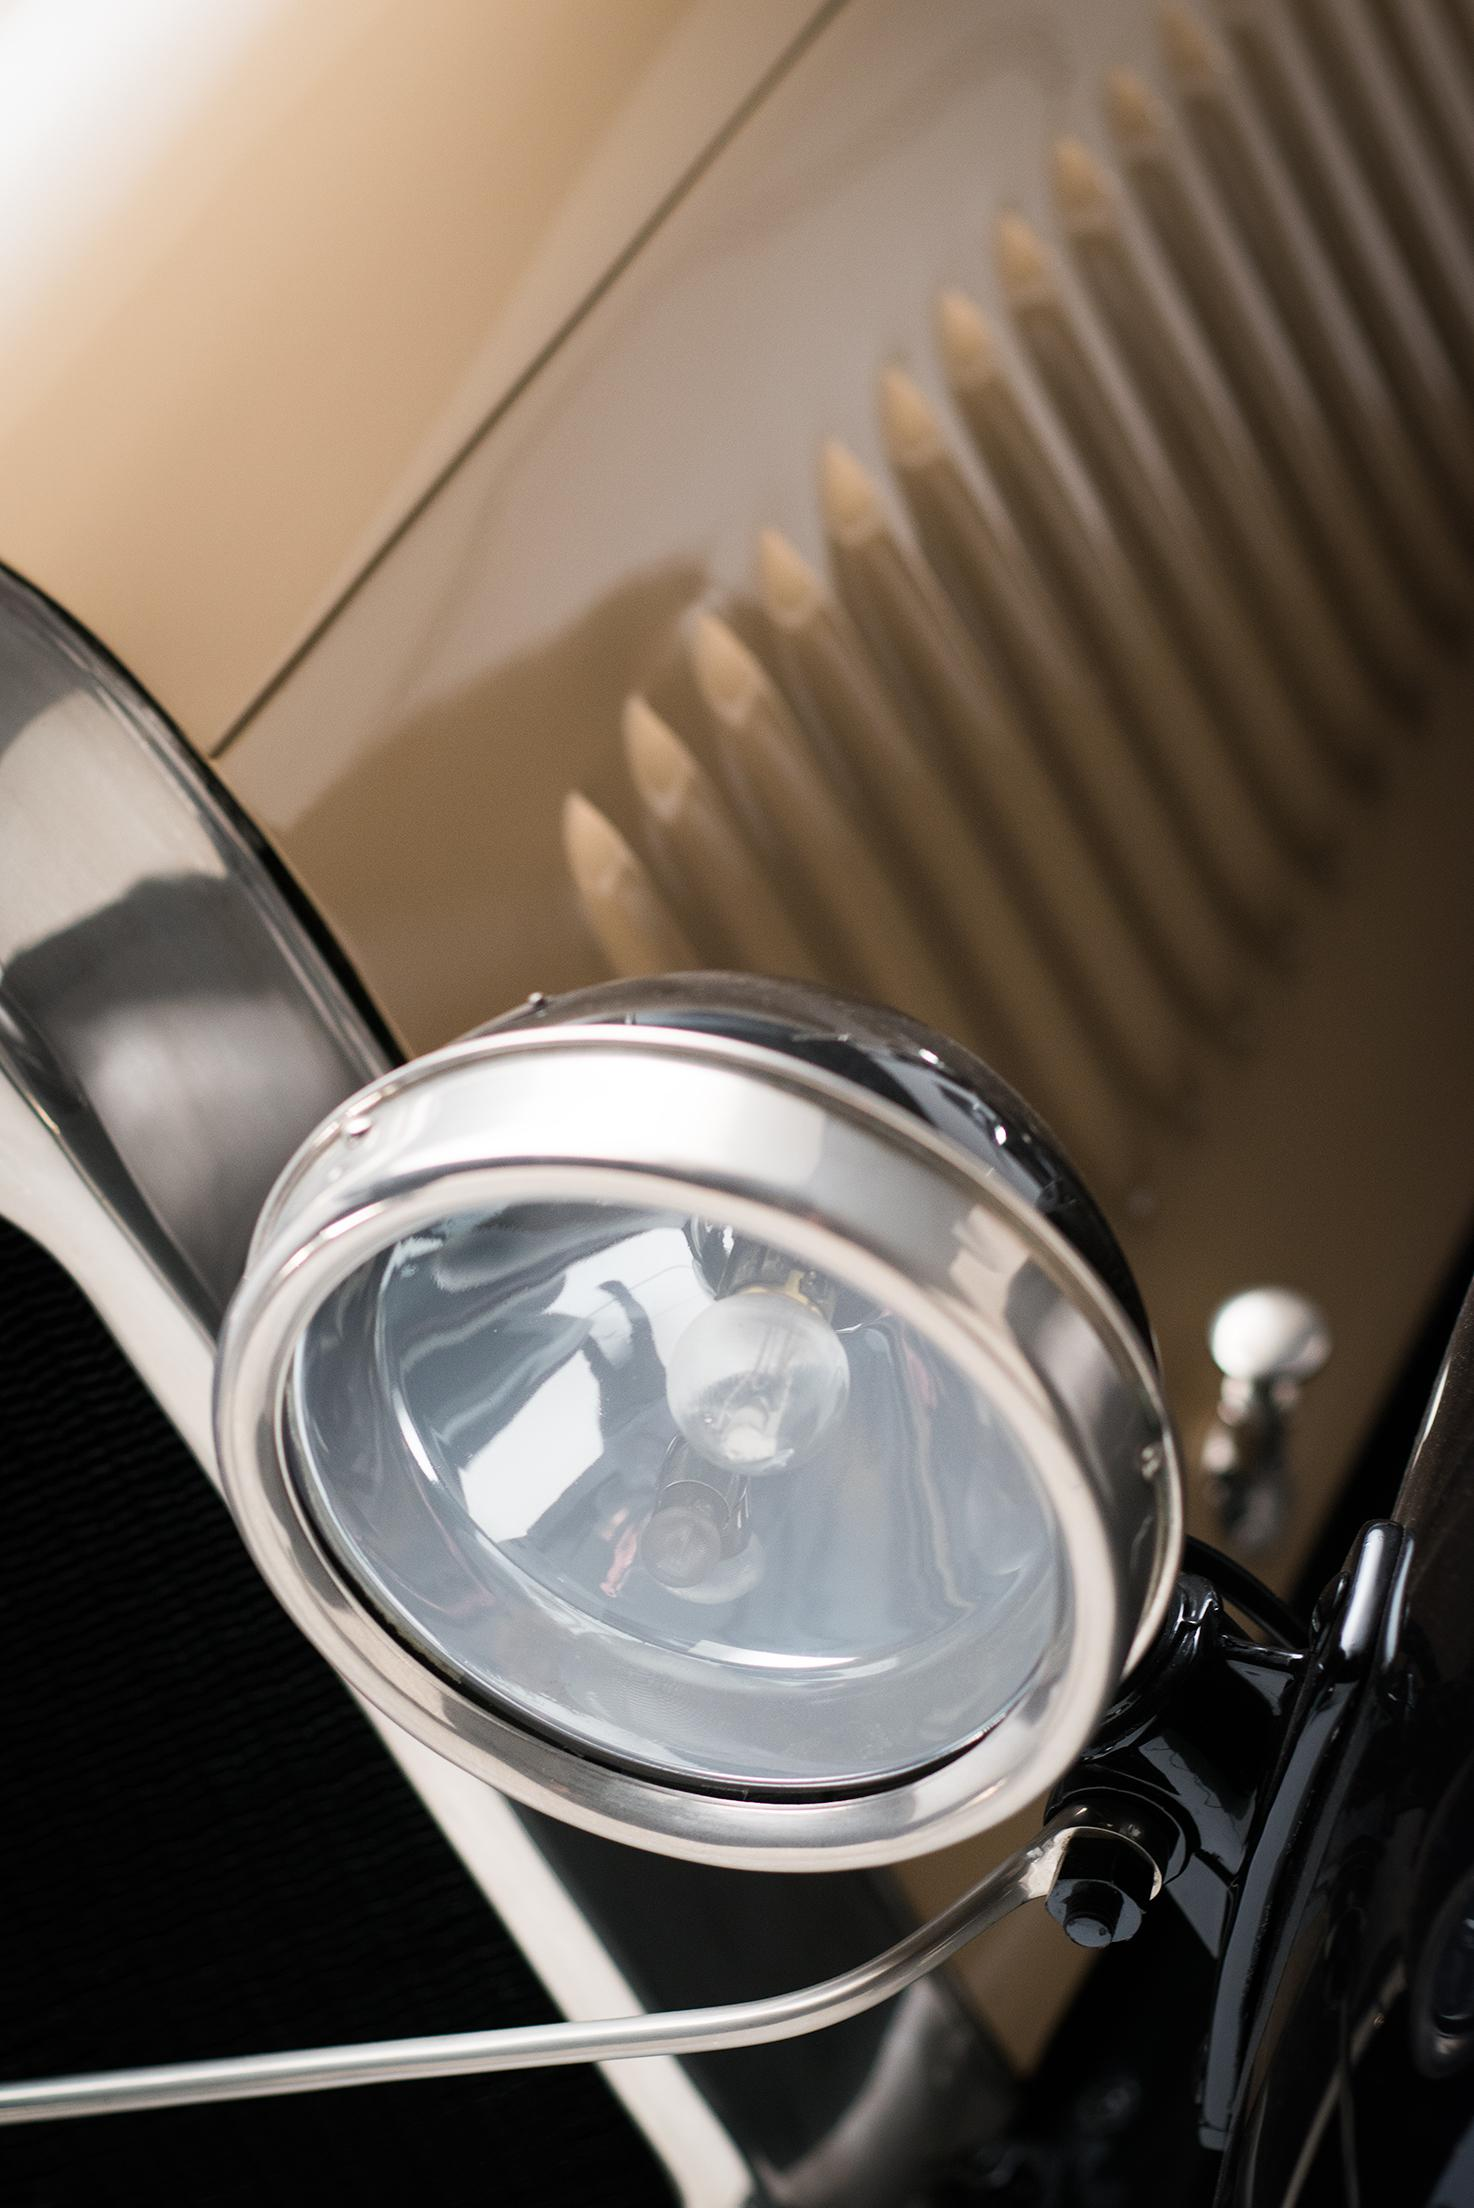 B2 Caddy - Front light